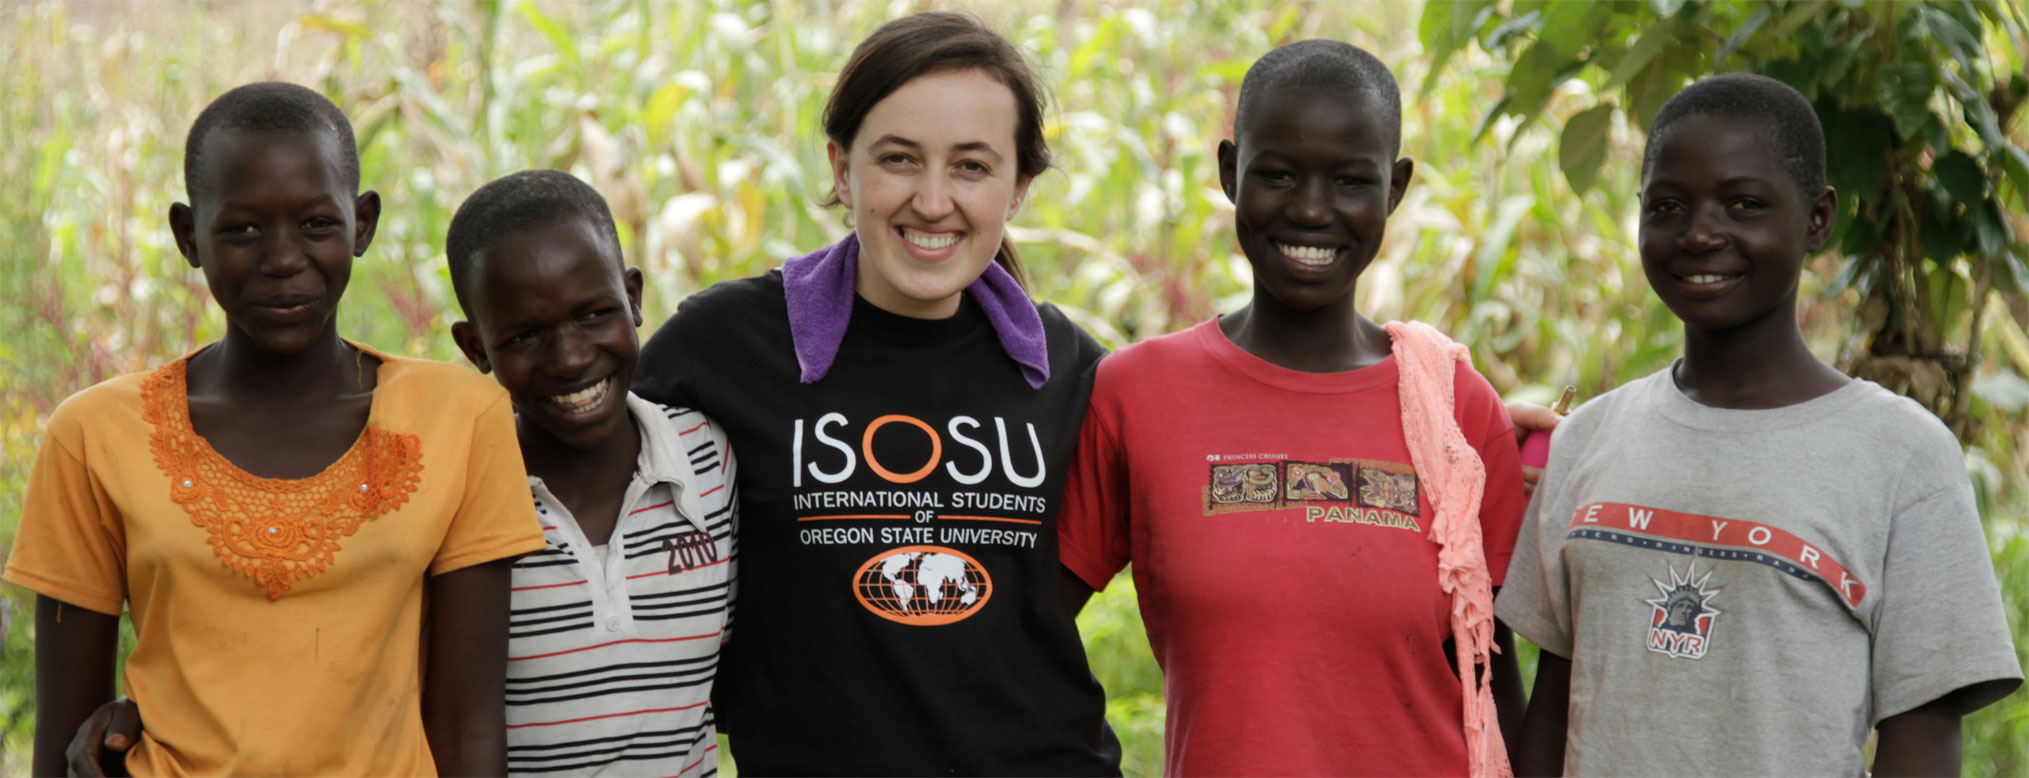 At Oregon State University, students can study humanitarian engineering from many academic angles as well as participate in projects in the field.